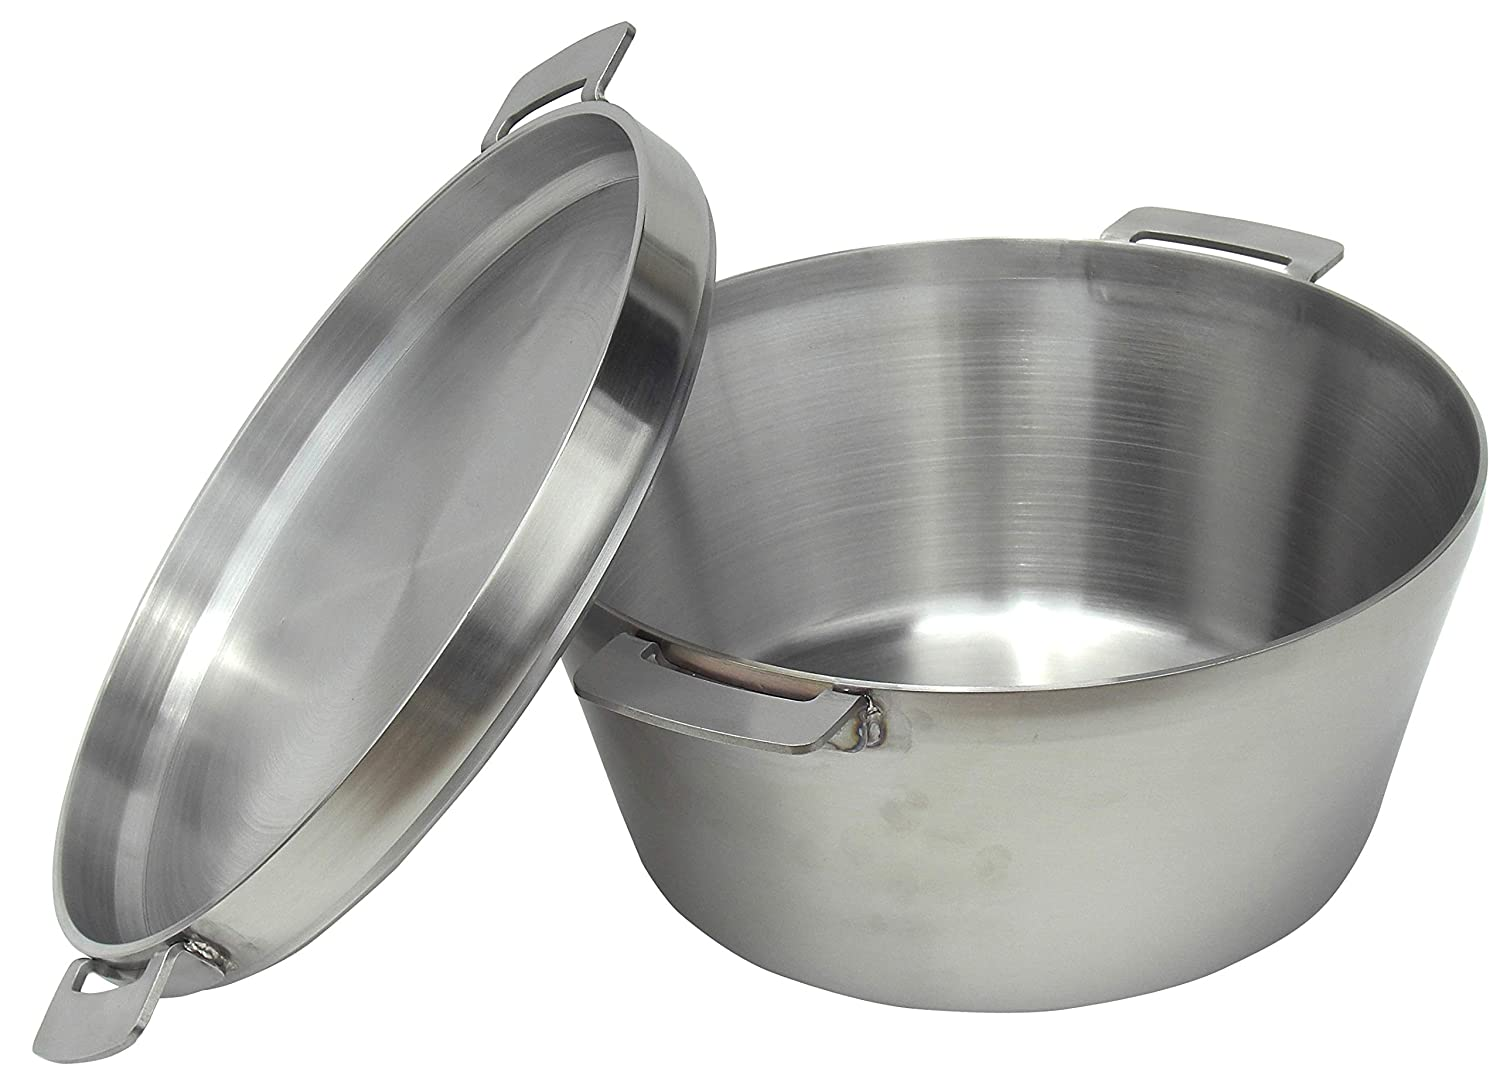 SOTO Stainless Steel Dutch Oven with 4mm Thick Wall